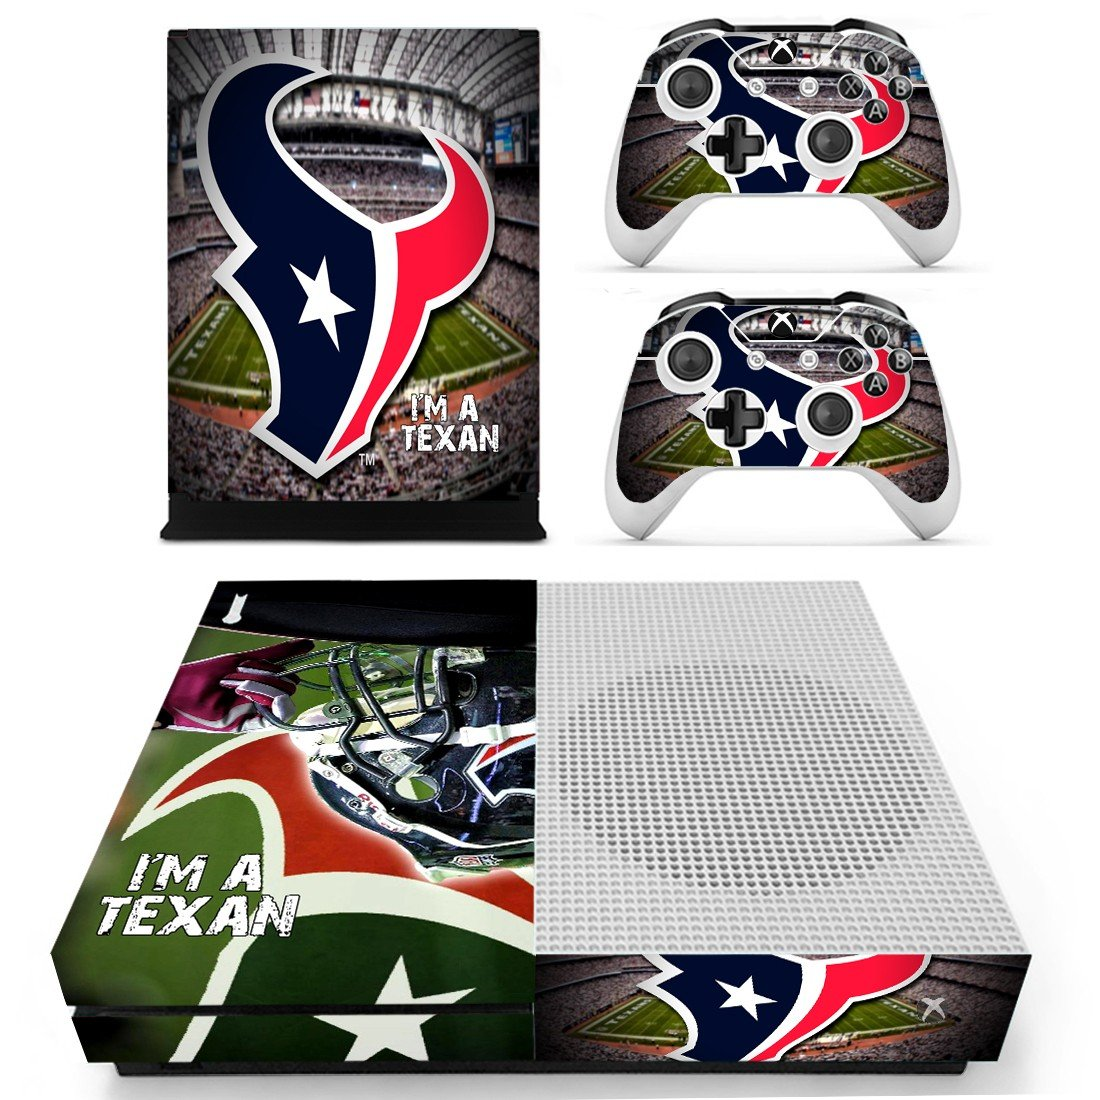 Houston Texan decal skin sticker for Xbox One S console and controllers